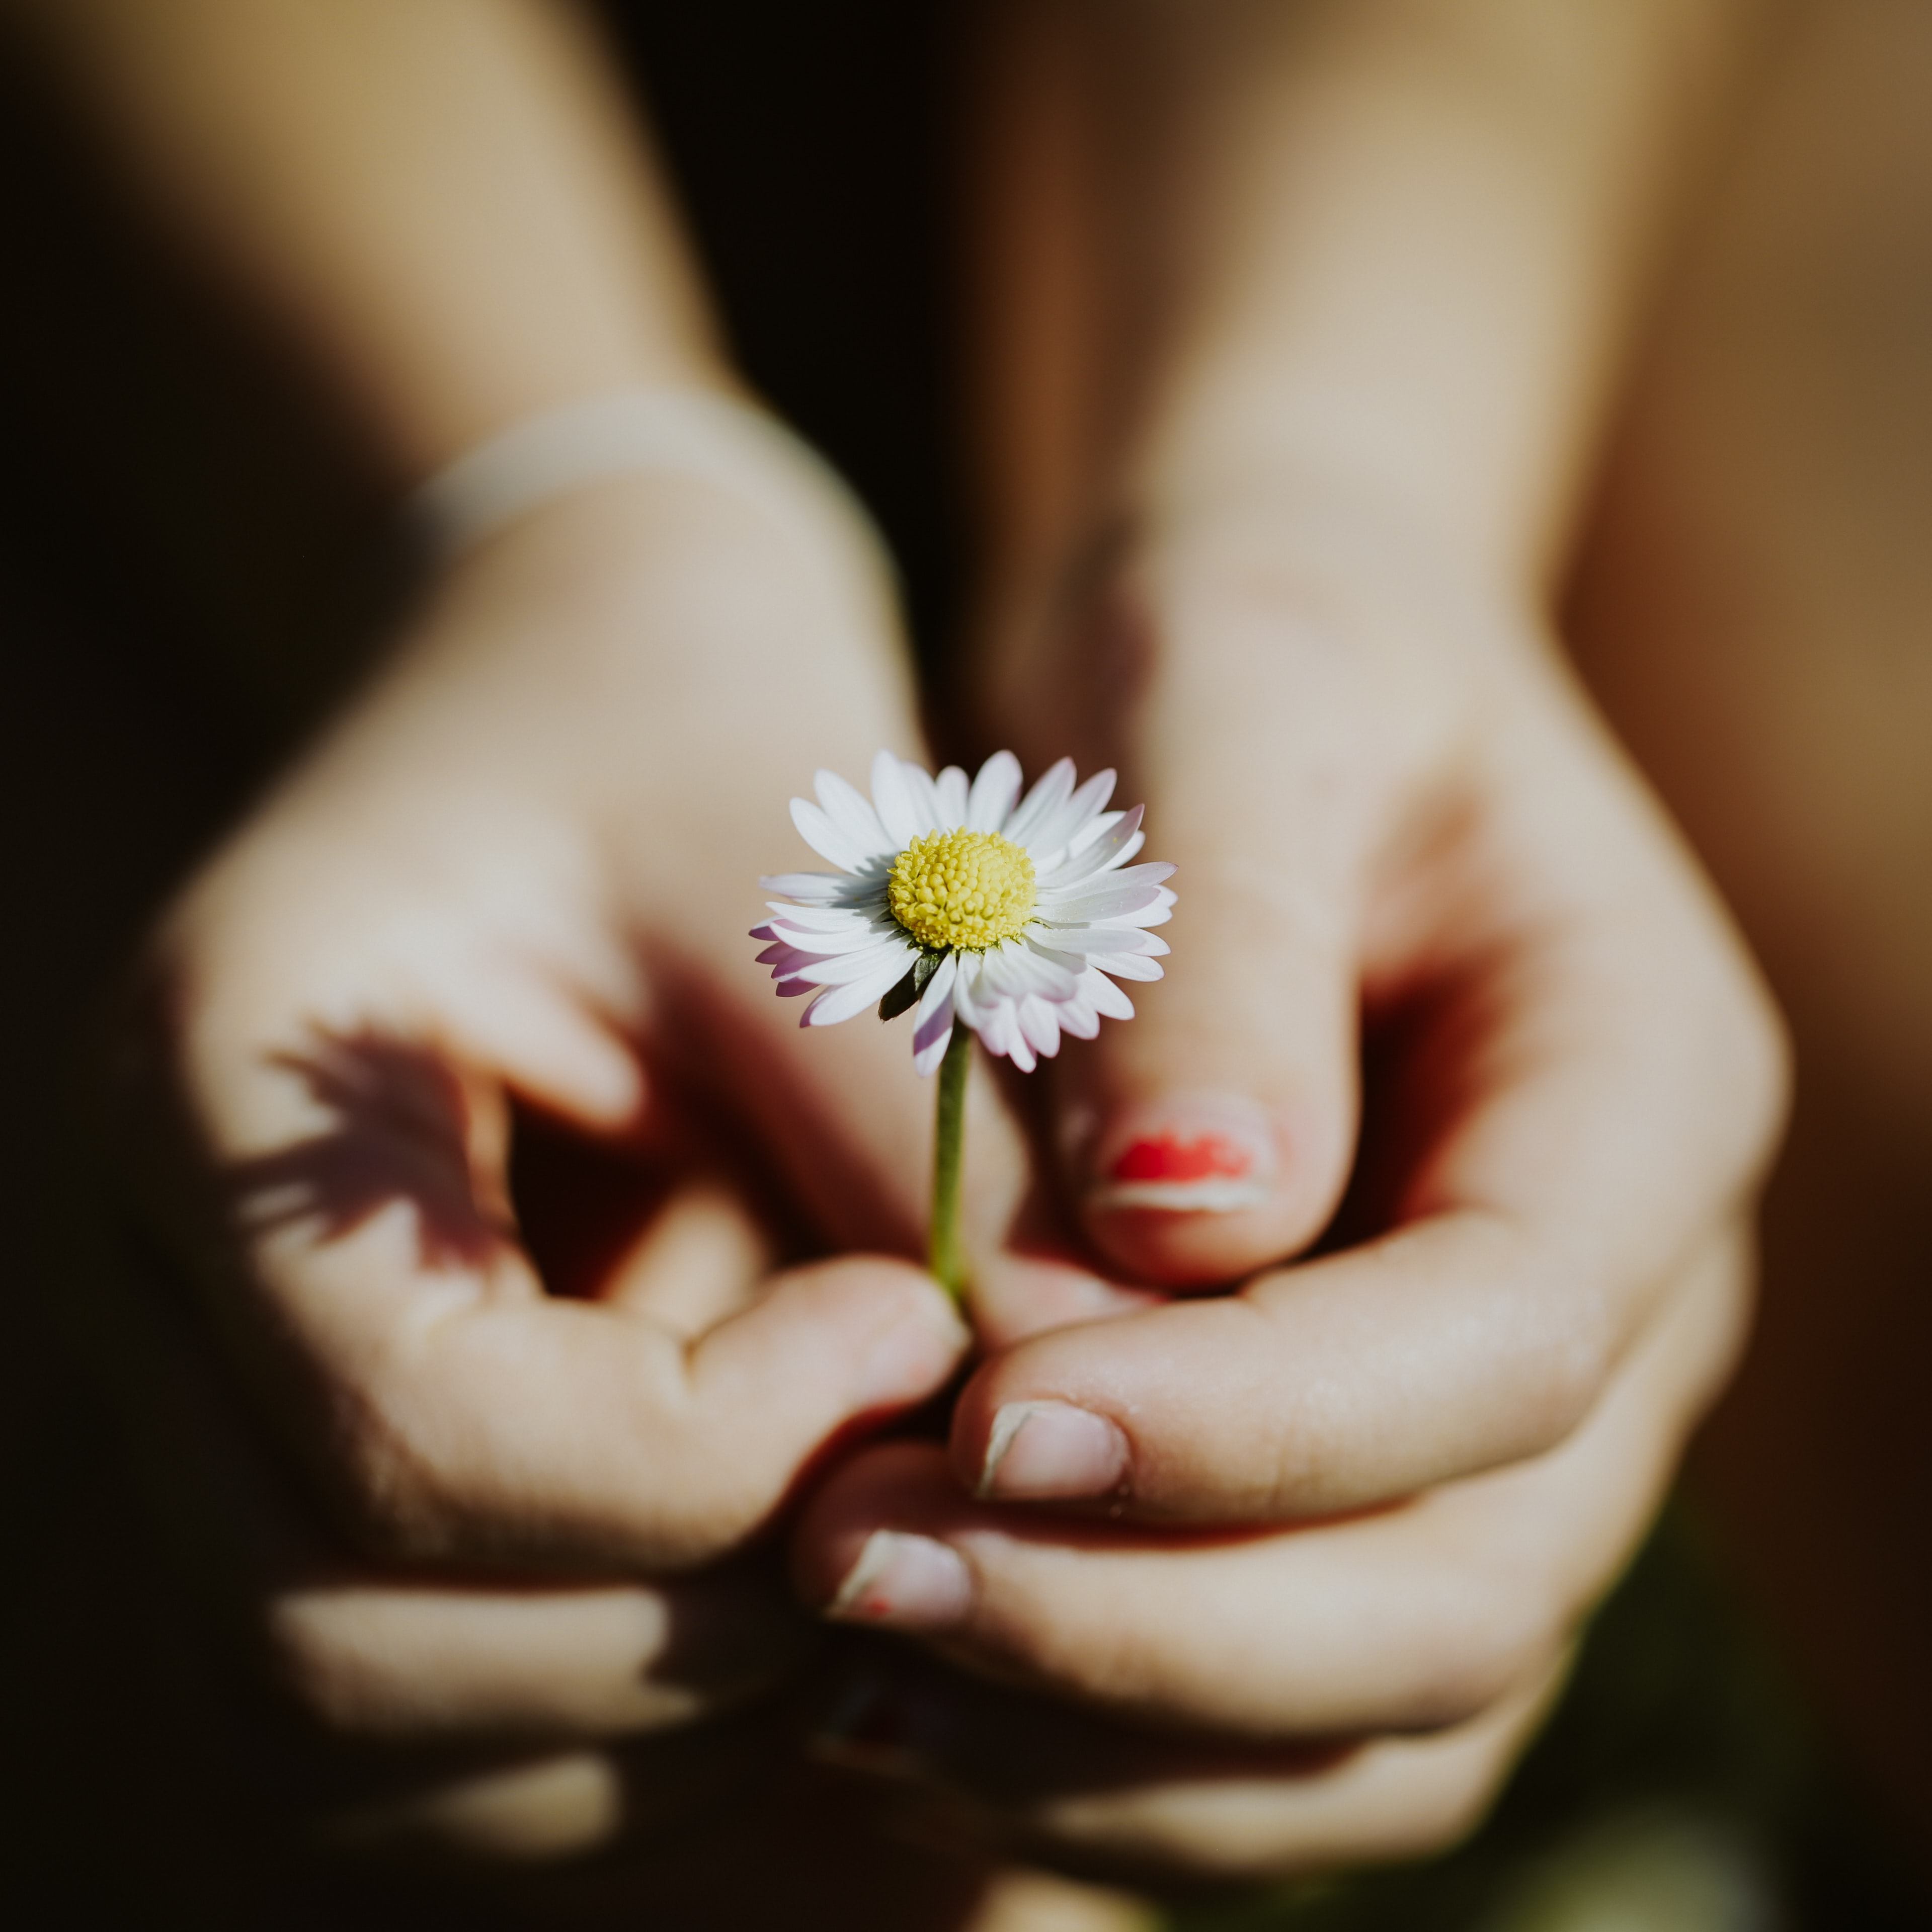 person holding white daisy flower